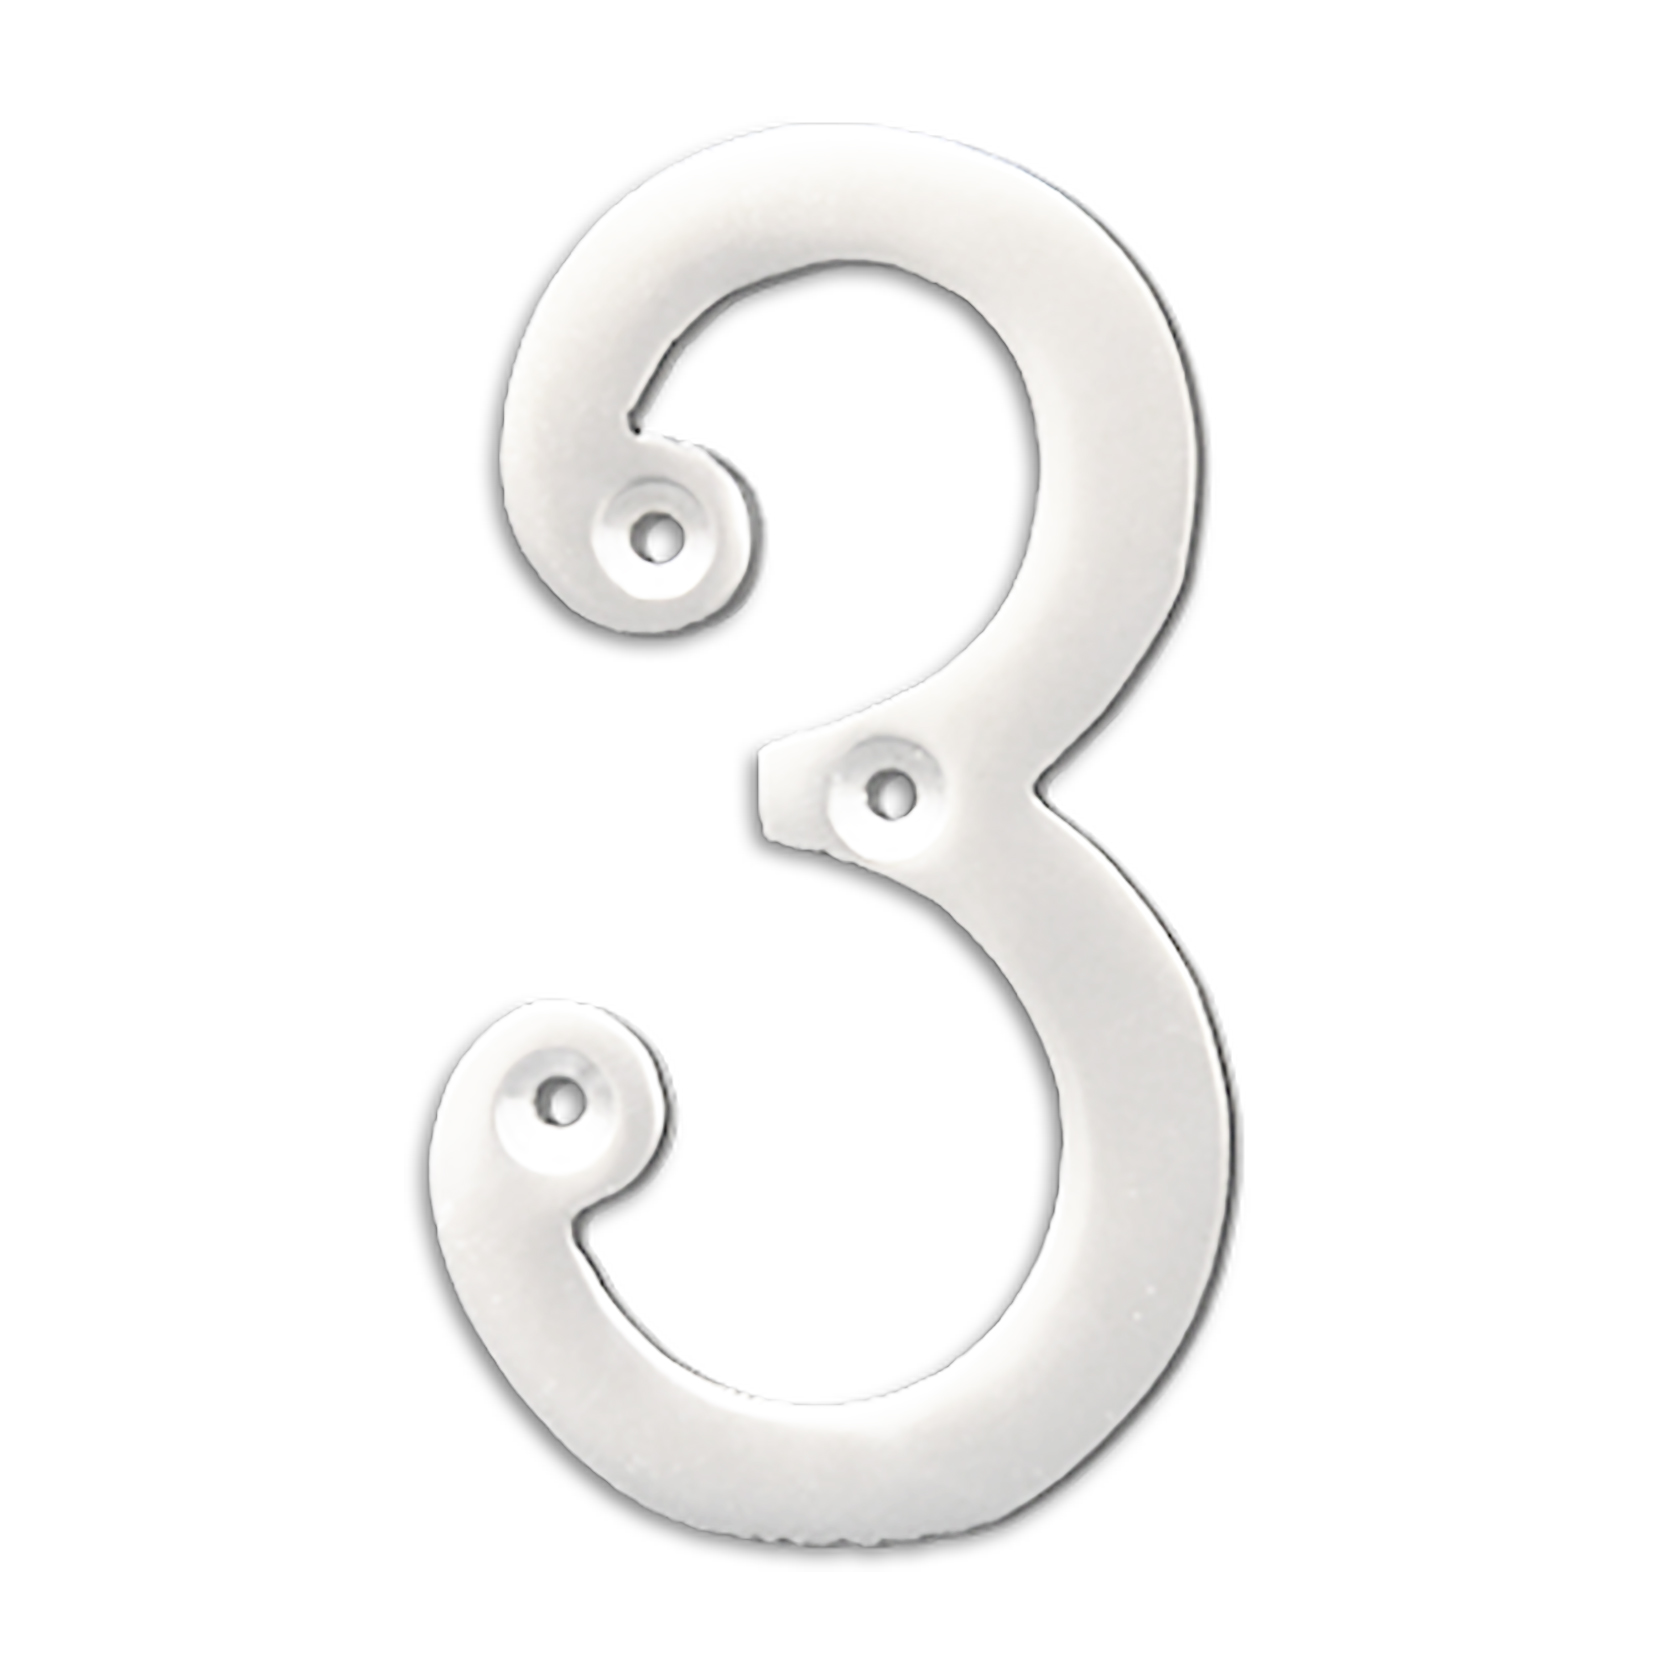 4-inch brass metal house number in polished chrome finish - metal number 3